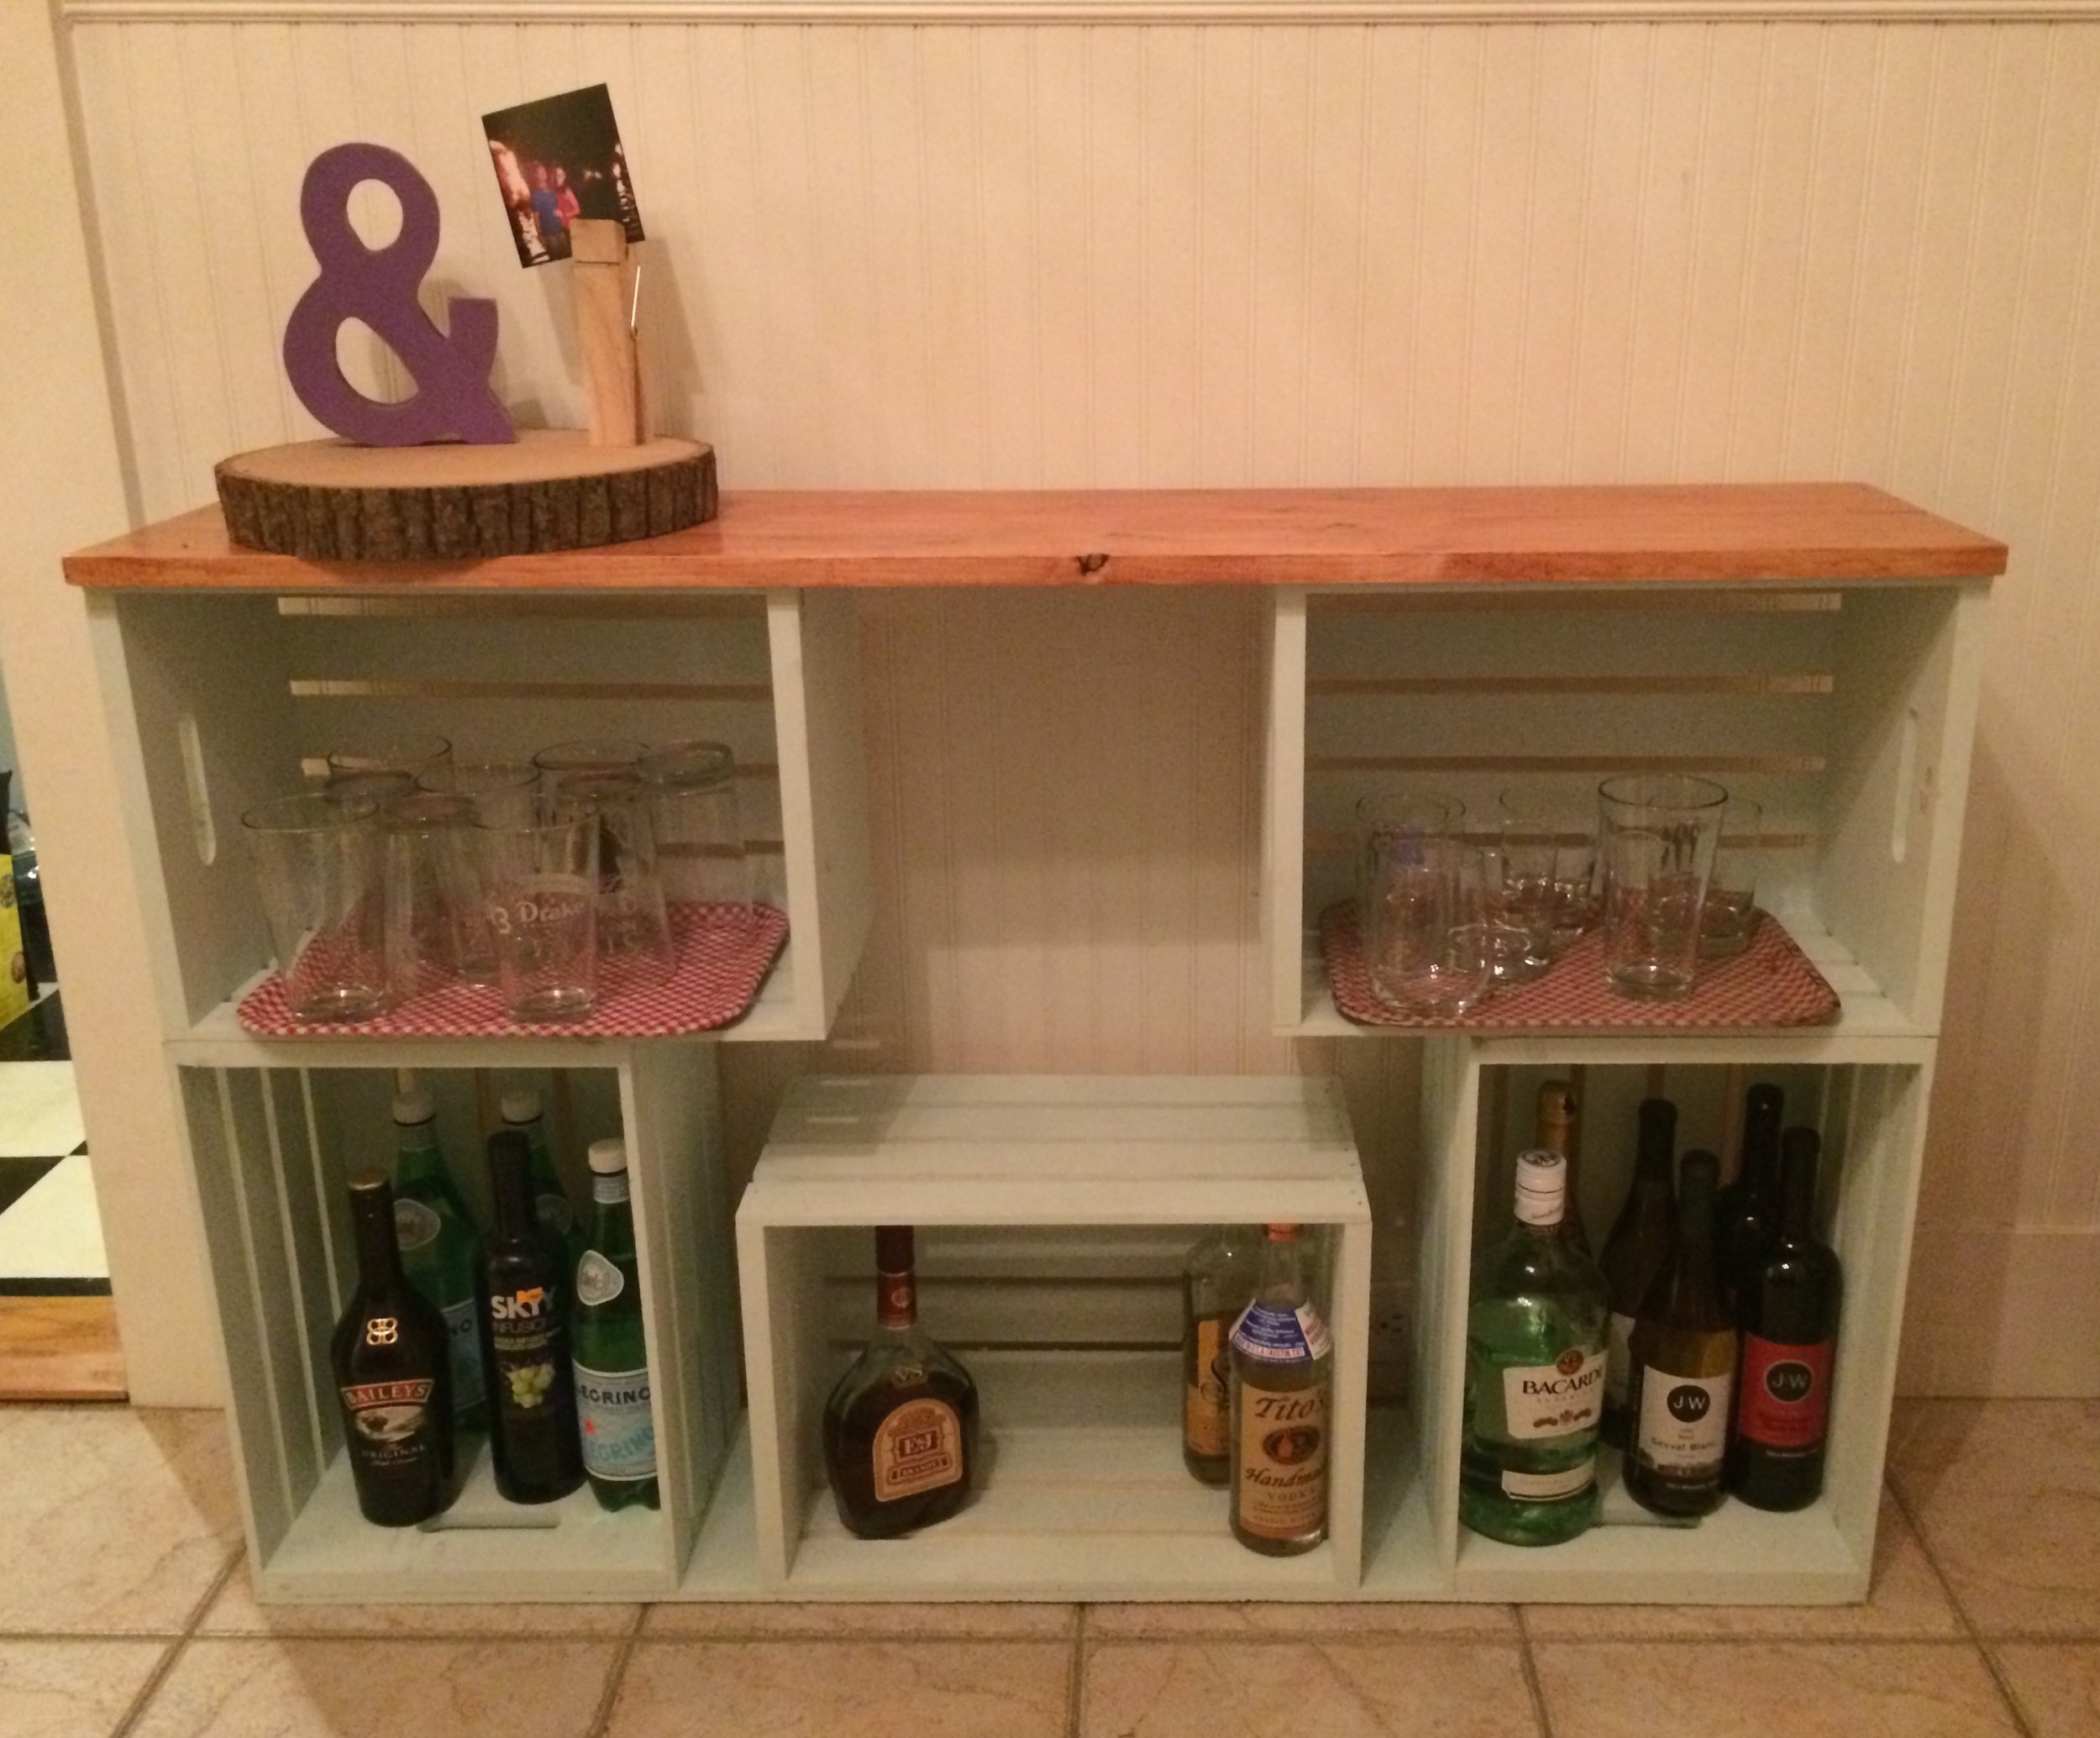 The 'Original' Crate Bar